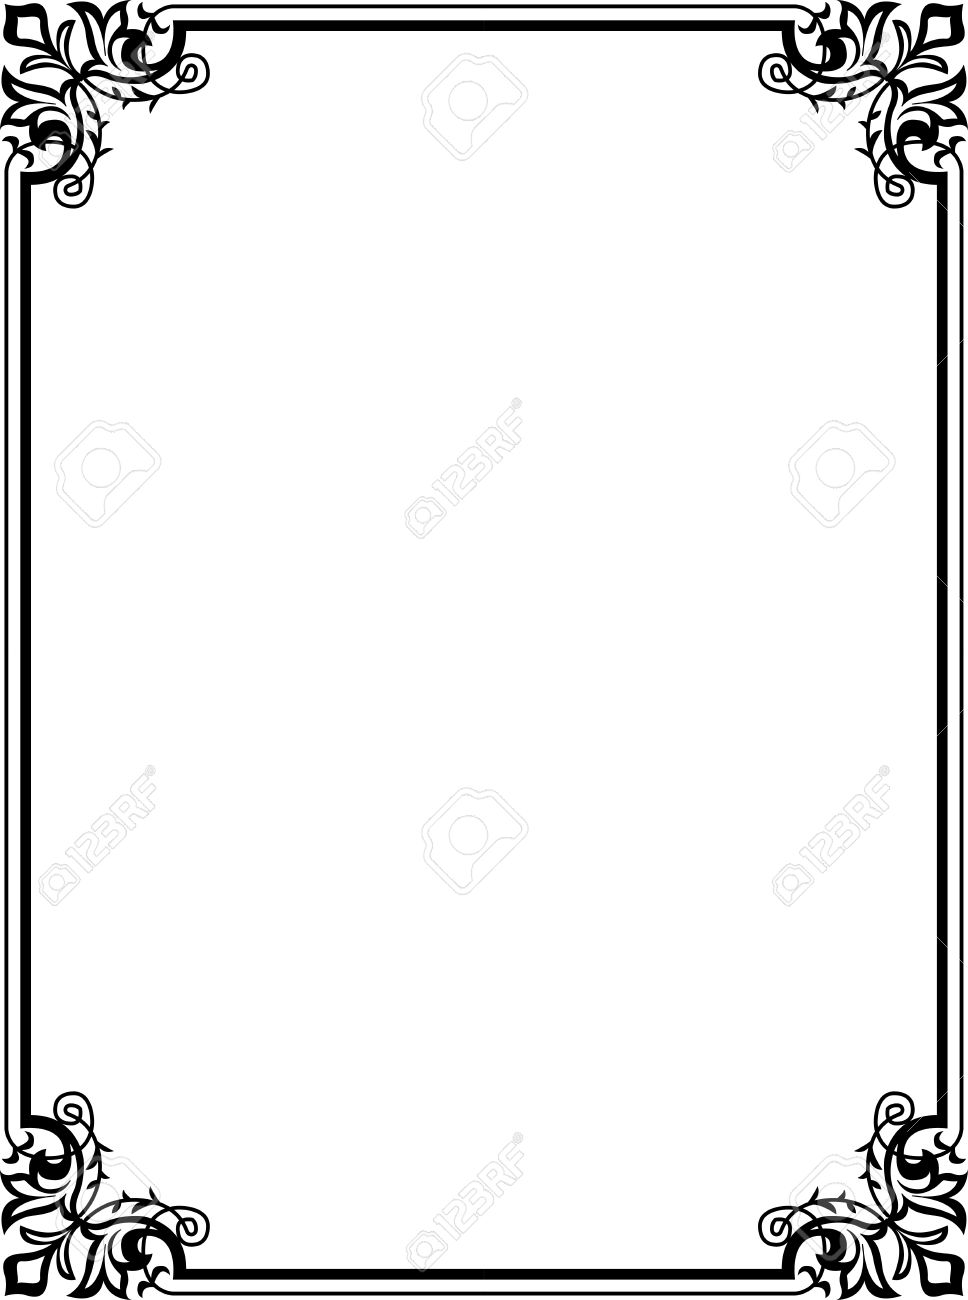 Elegant Frame With Decorative Corners, Monochrome Royalty Free ...